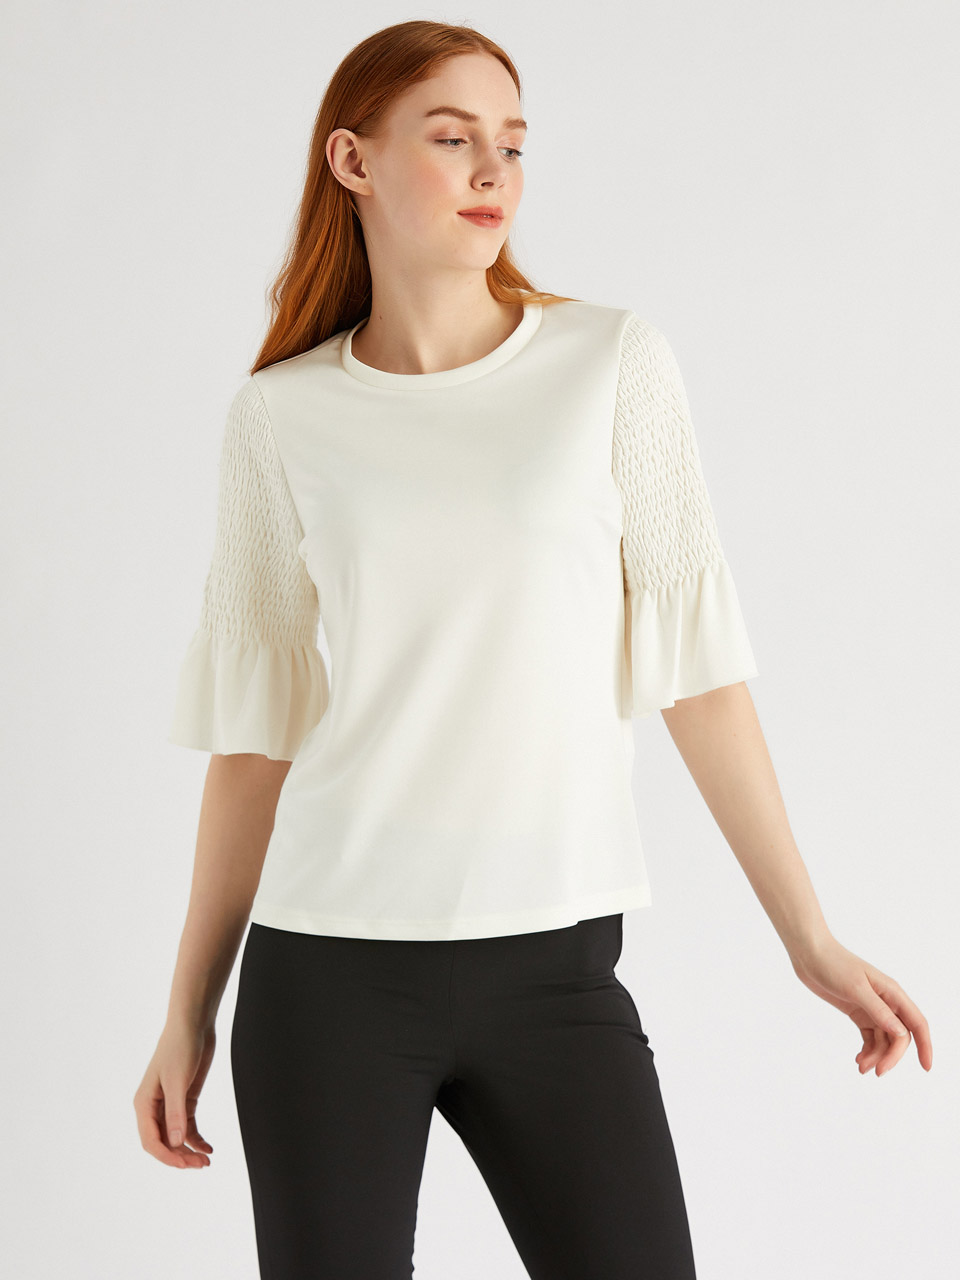 Cyling Collar blouise